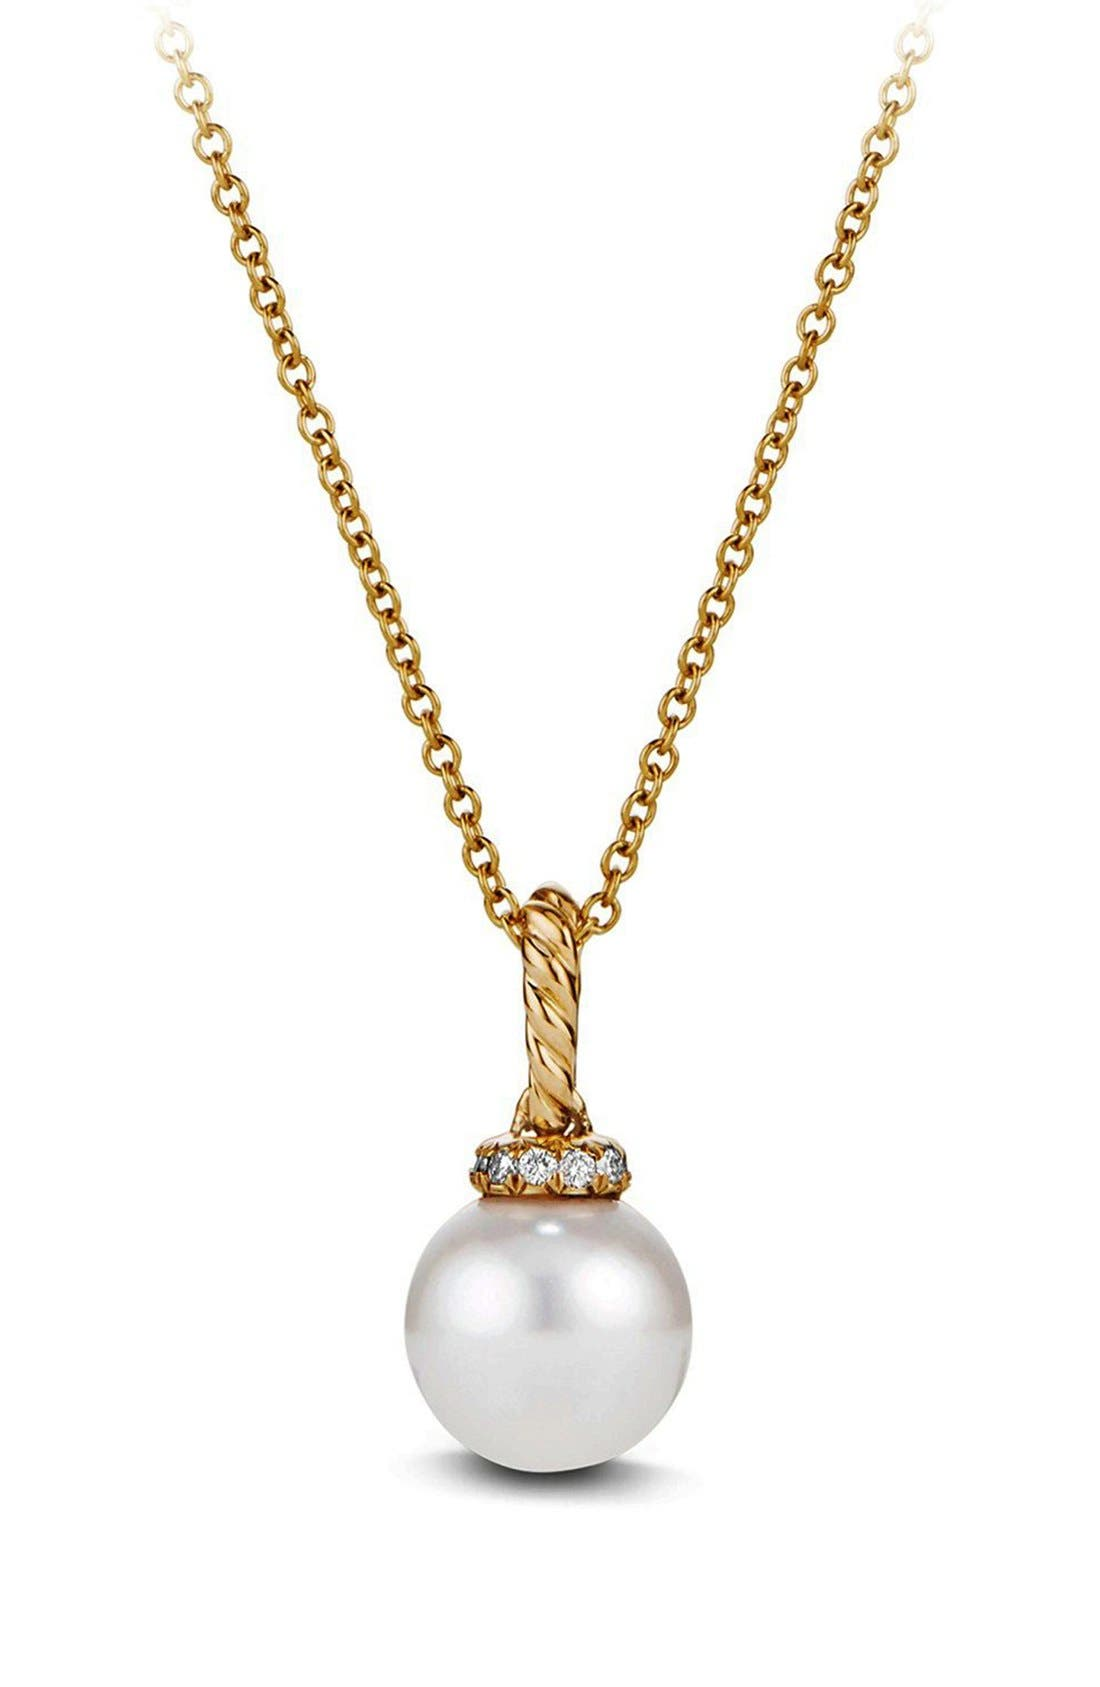 'Solari' Pendant Necklace with Pearls and Diamonds in 18K Gold,                         Main,                         color, PEARL